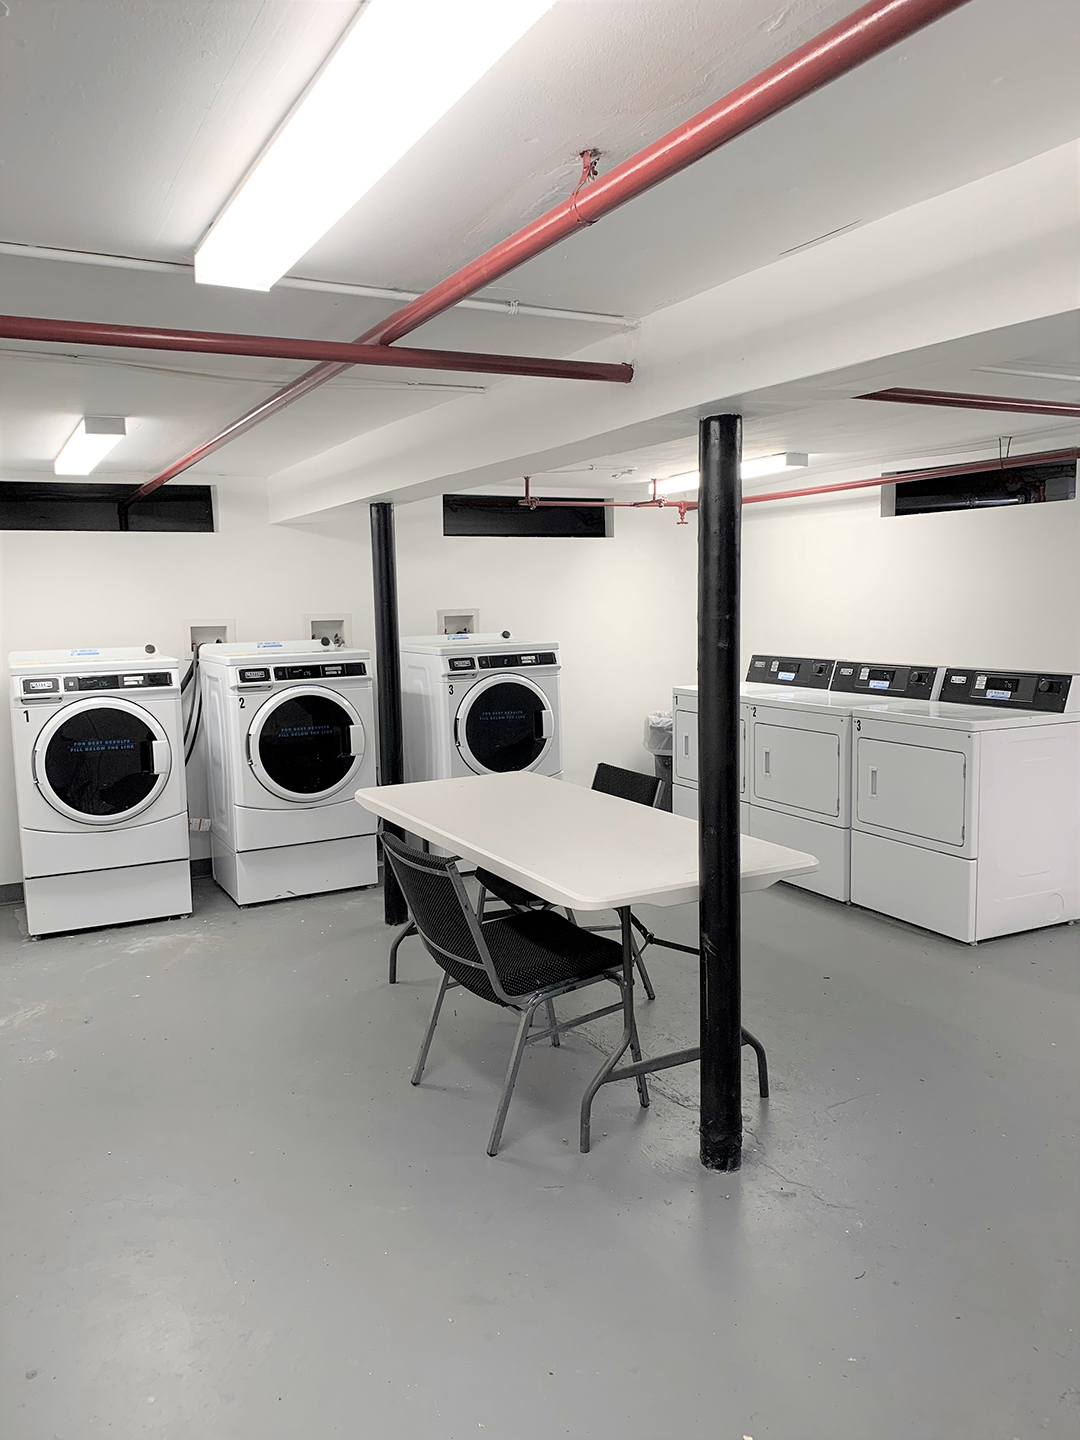 Laundry facilities at Sutton Commons Apartments